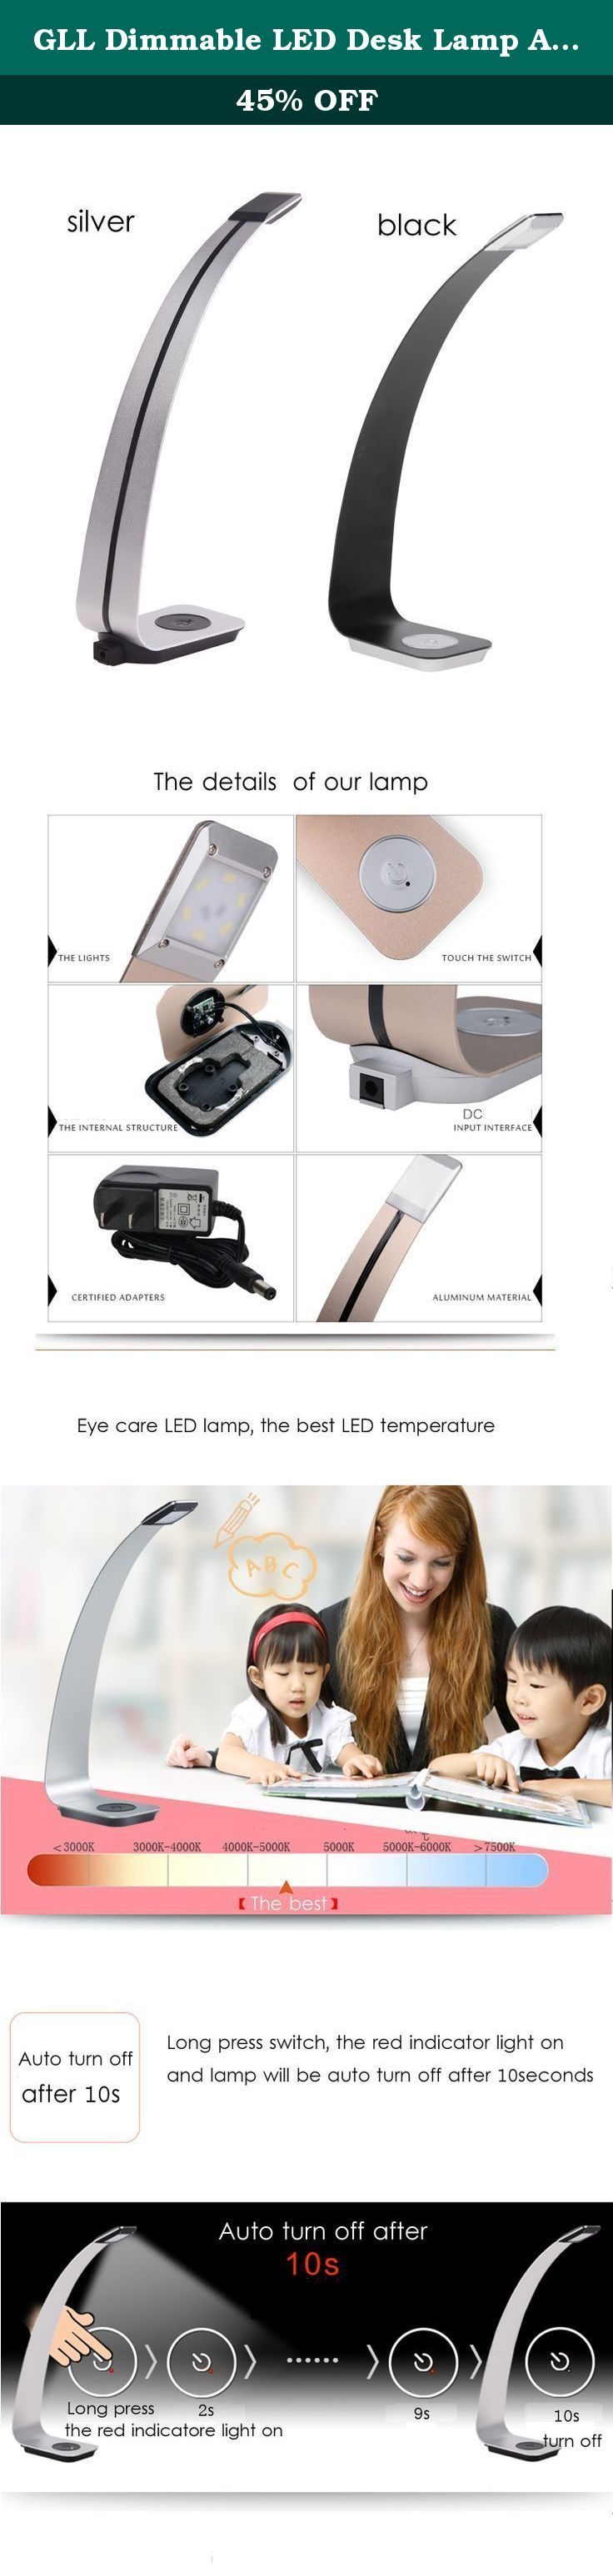 GLL Dimmable LED Desk Lamp Aluminum Alloy Lamp Arm,LED Reading Lamp for Bedroom,Eye-Care Modern Table Lamp,3 Level Dimmer Brightness,Touch Table Lamp, Office Lamp, 3W Led Bulbs. GLL Direct We are committed to providing each customer with the highest standard of customer service, and highest quality products. Widely Use Suitable for dorm room, home office tables, bedroom desks, or study areas. Great for all age groups Girls, boys, kids, teens, and adults alike. Excellent for college and...